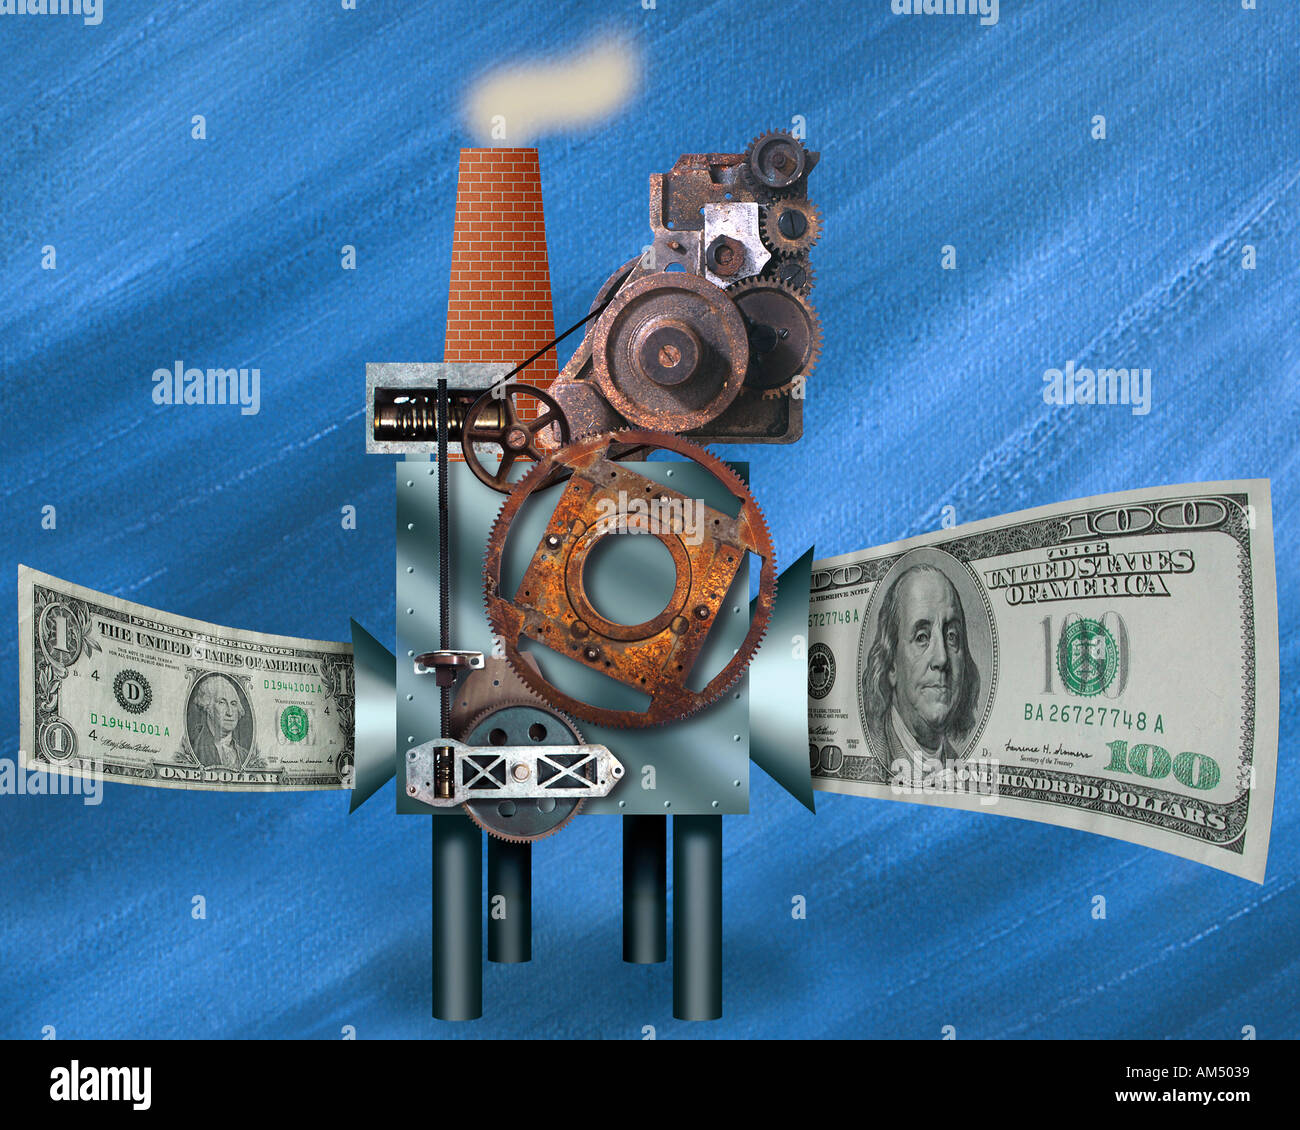 A whimsical Money Machine where money enters one side small and grows out the other side larger or bigger. - Stock Image